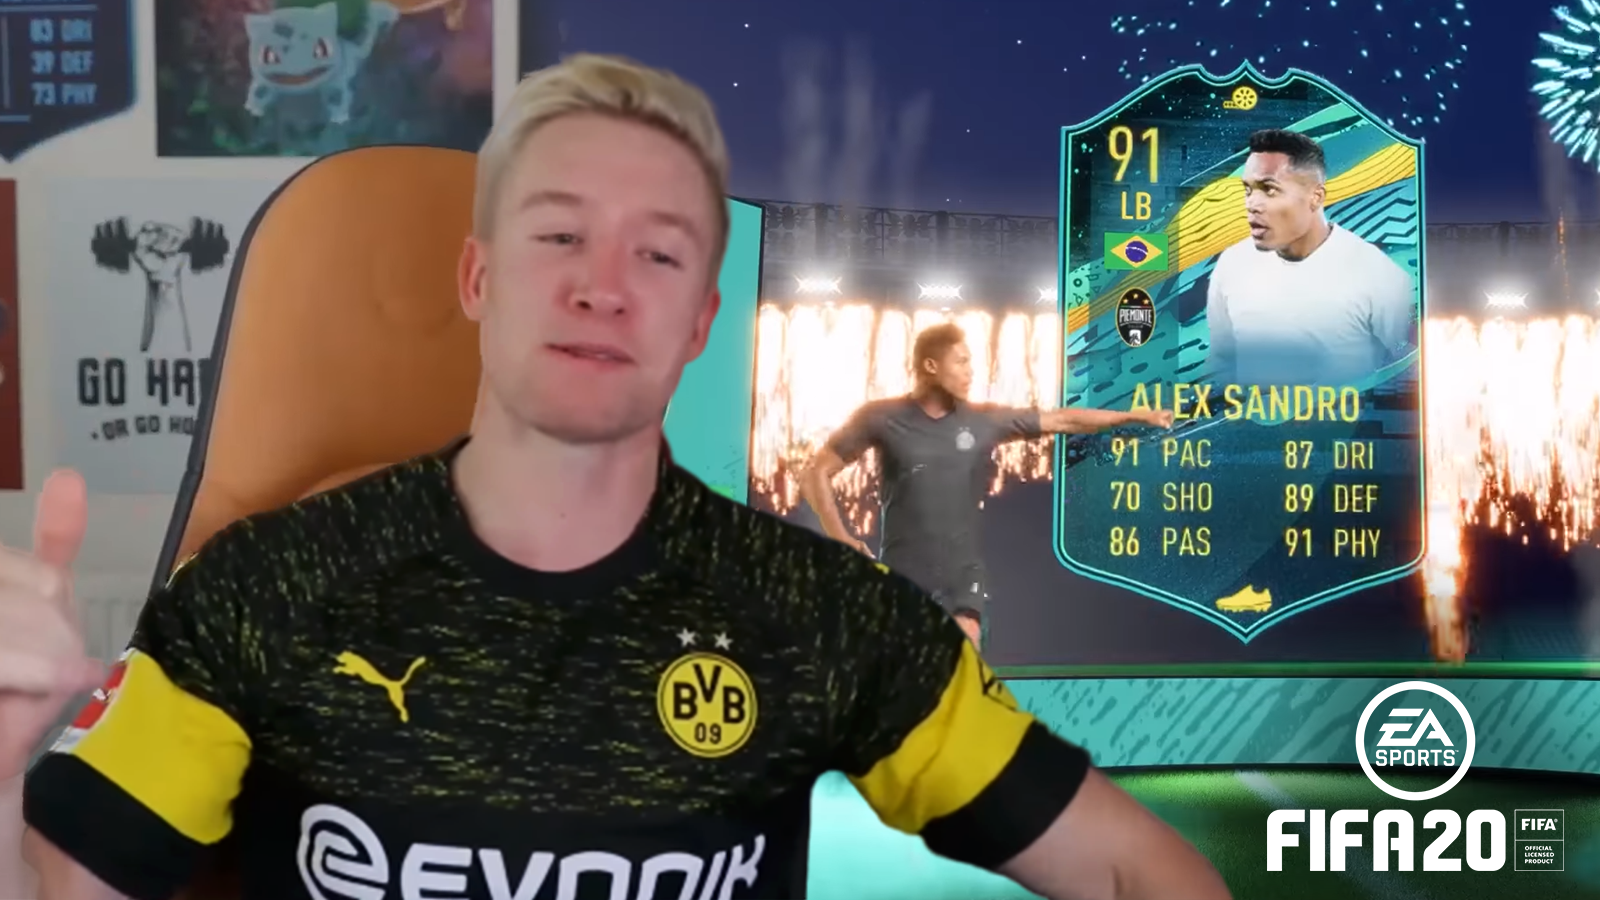 Reev has dubbed Alex Sandro's Player Moments SBC the best LB in FIFA 20.